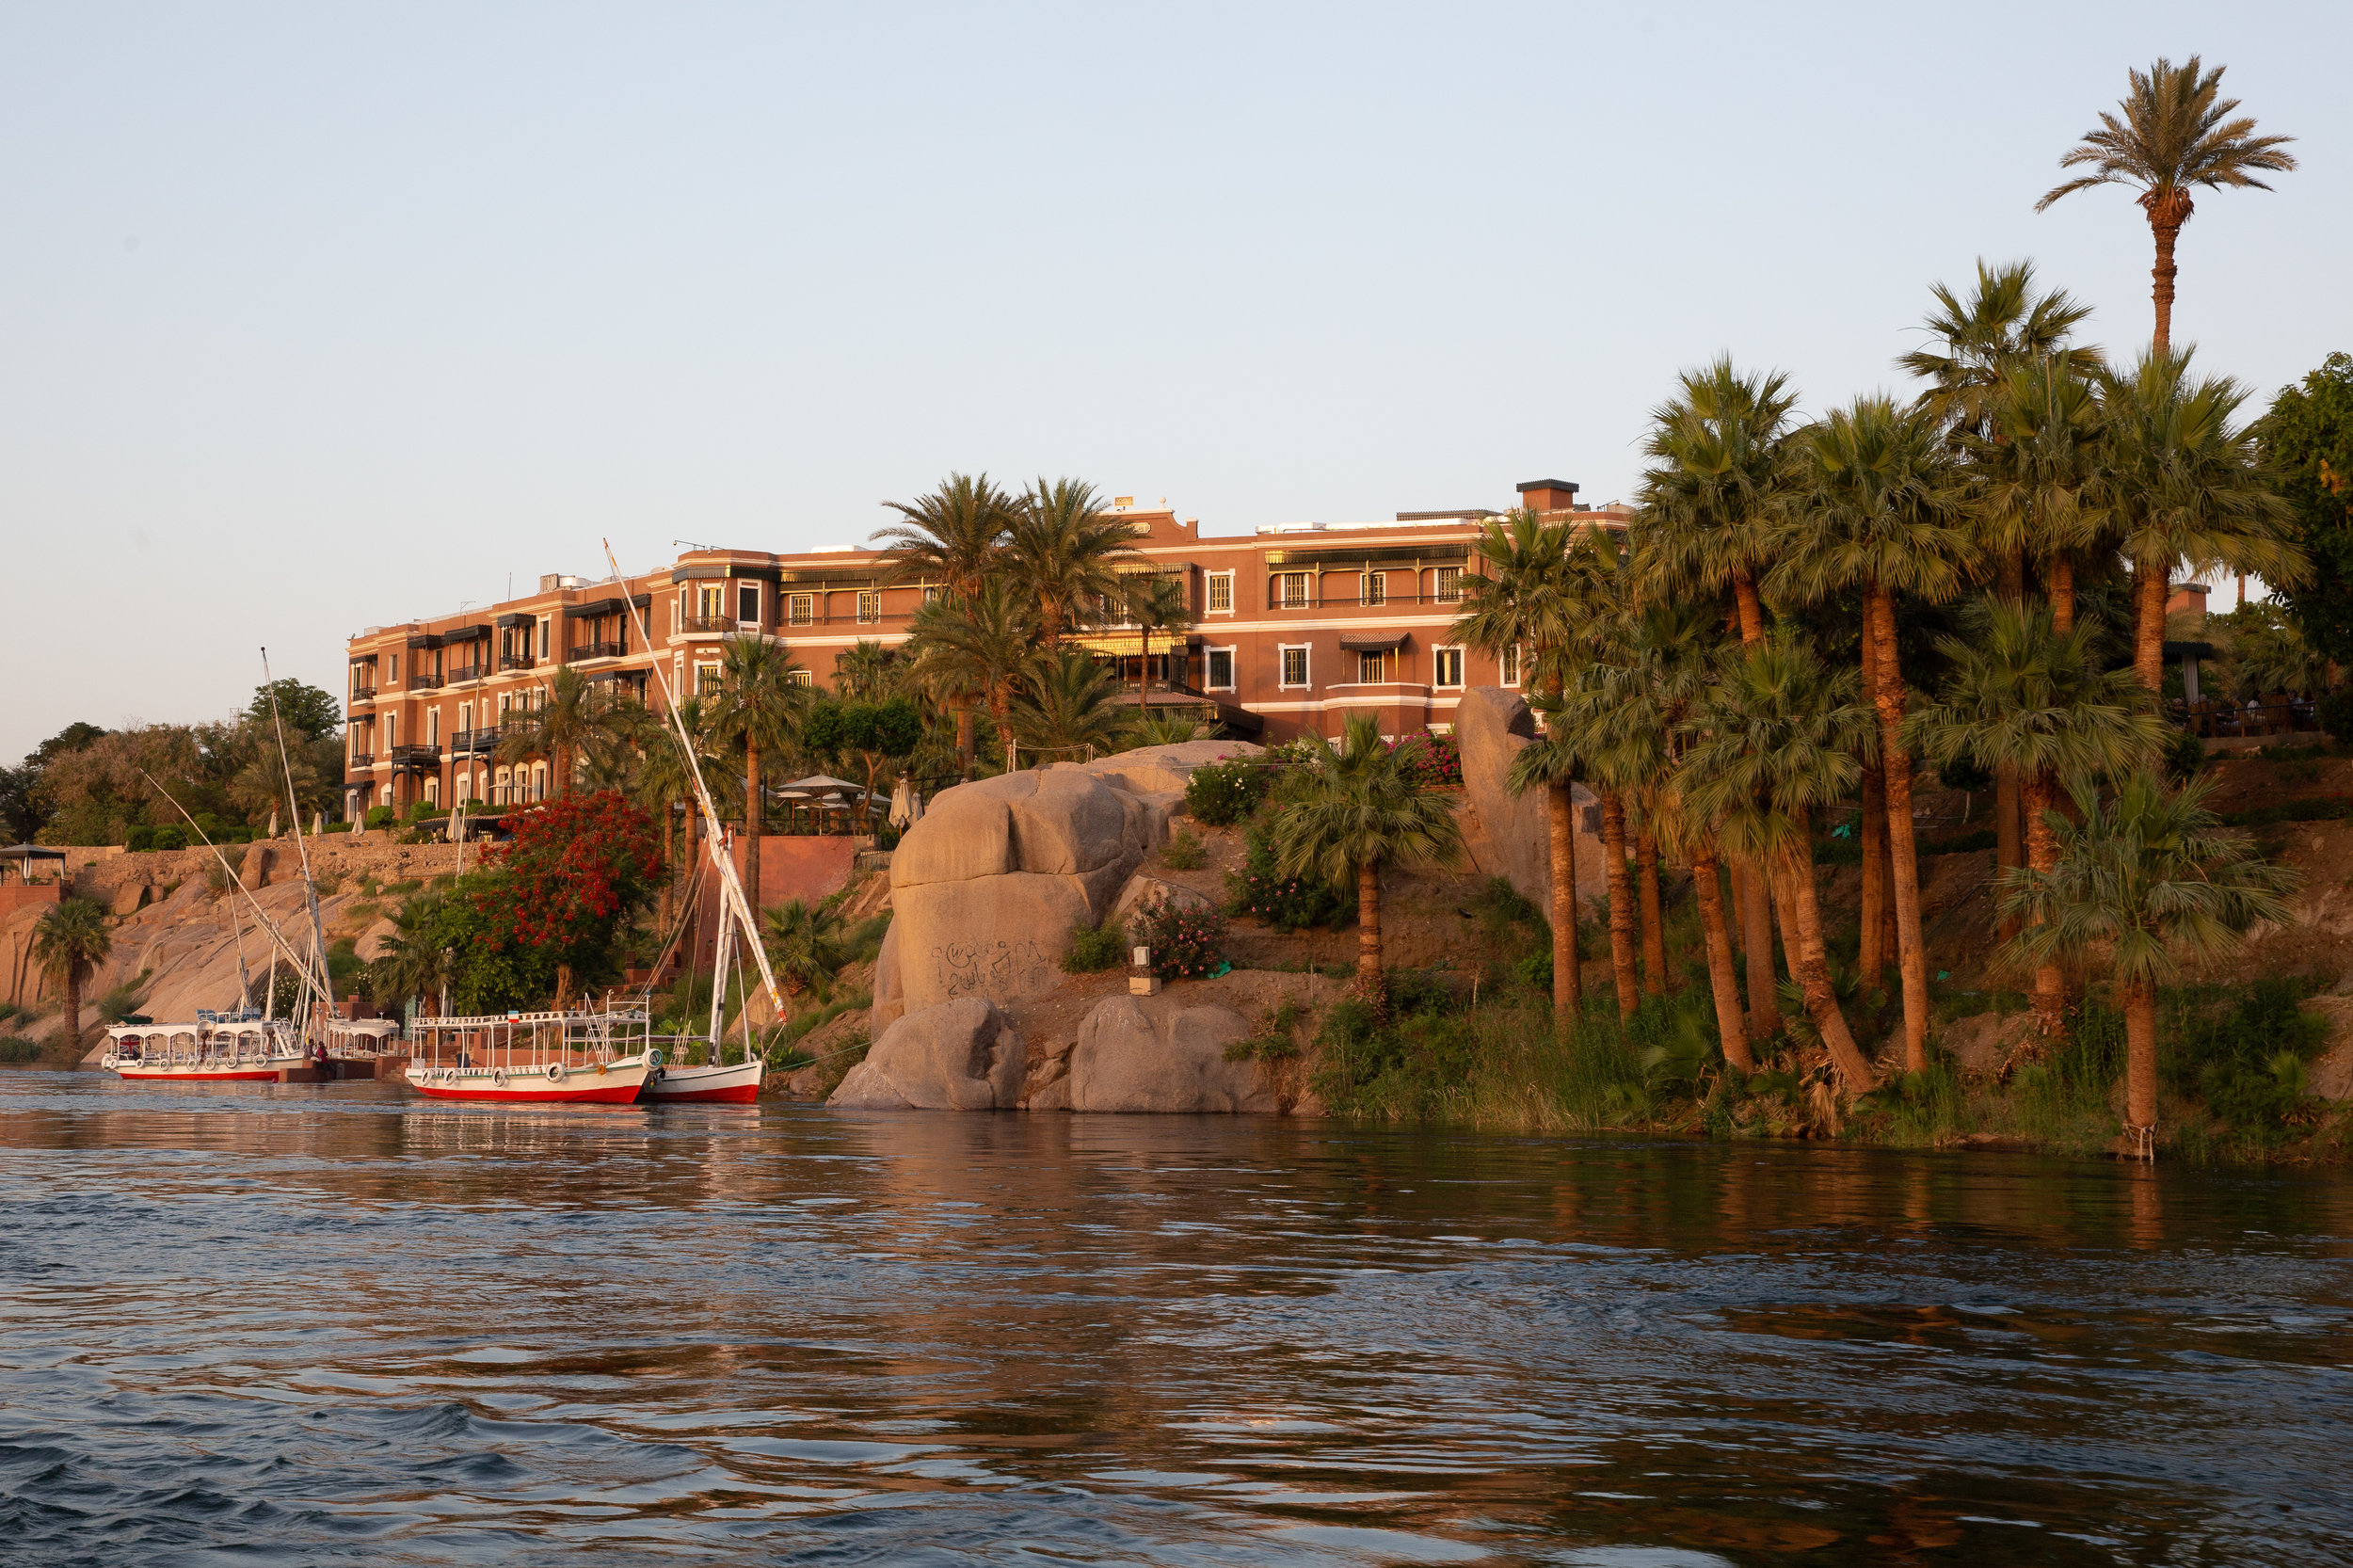 The Old Cataract, Aswan - Egypt - Wild Earth Expeditions